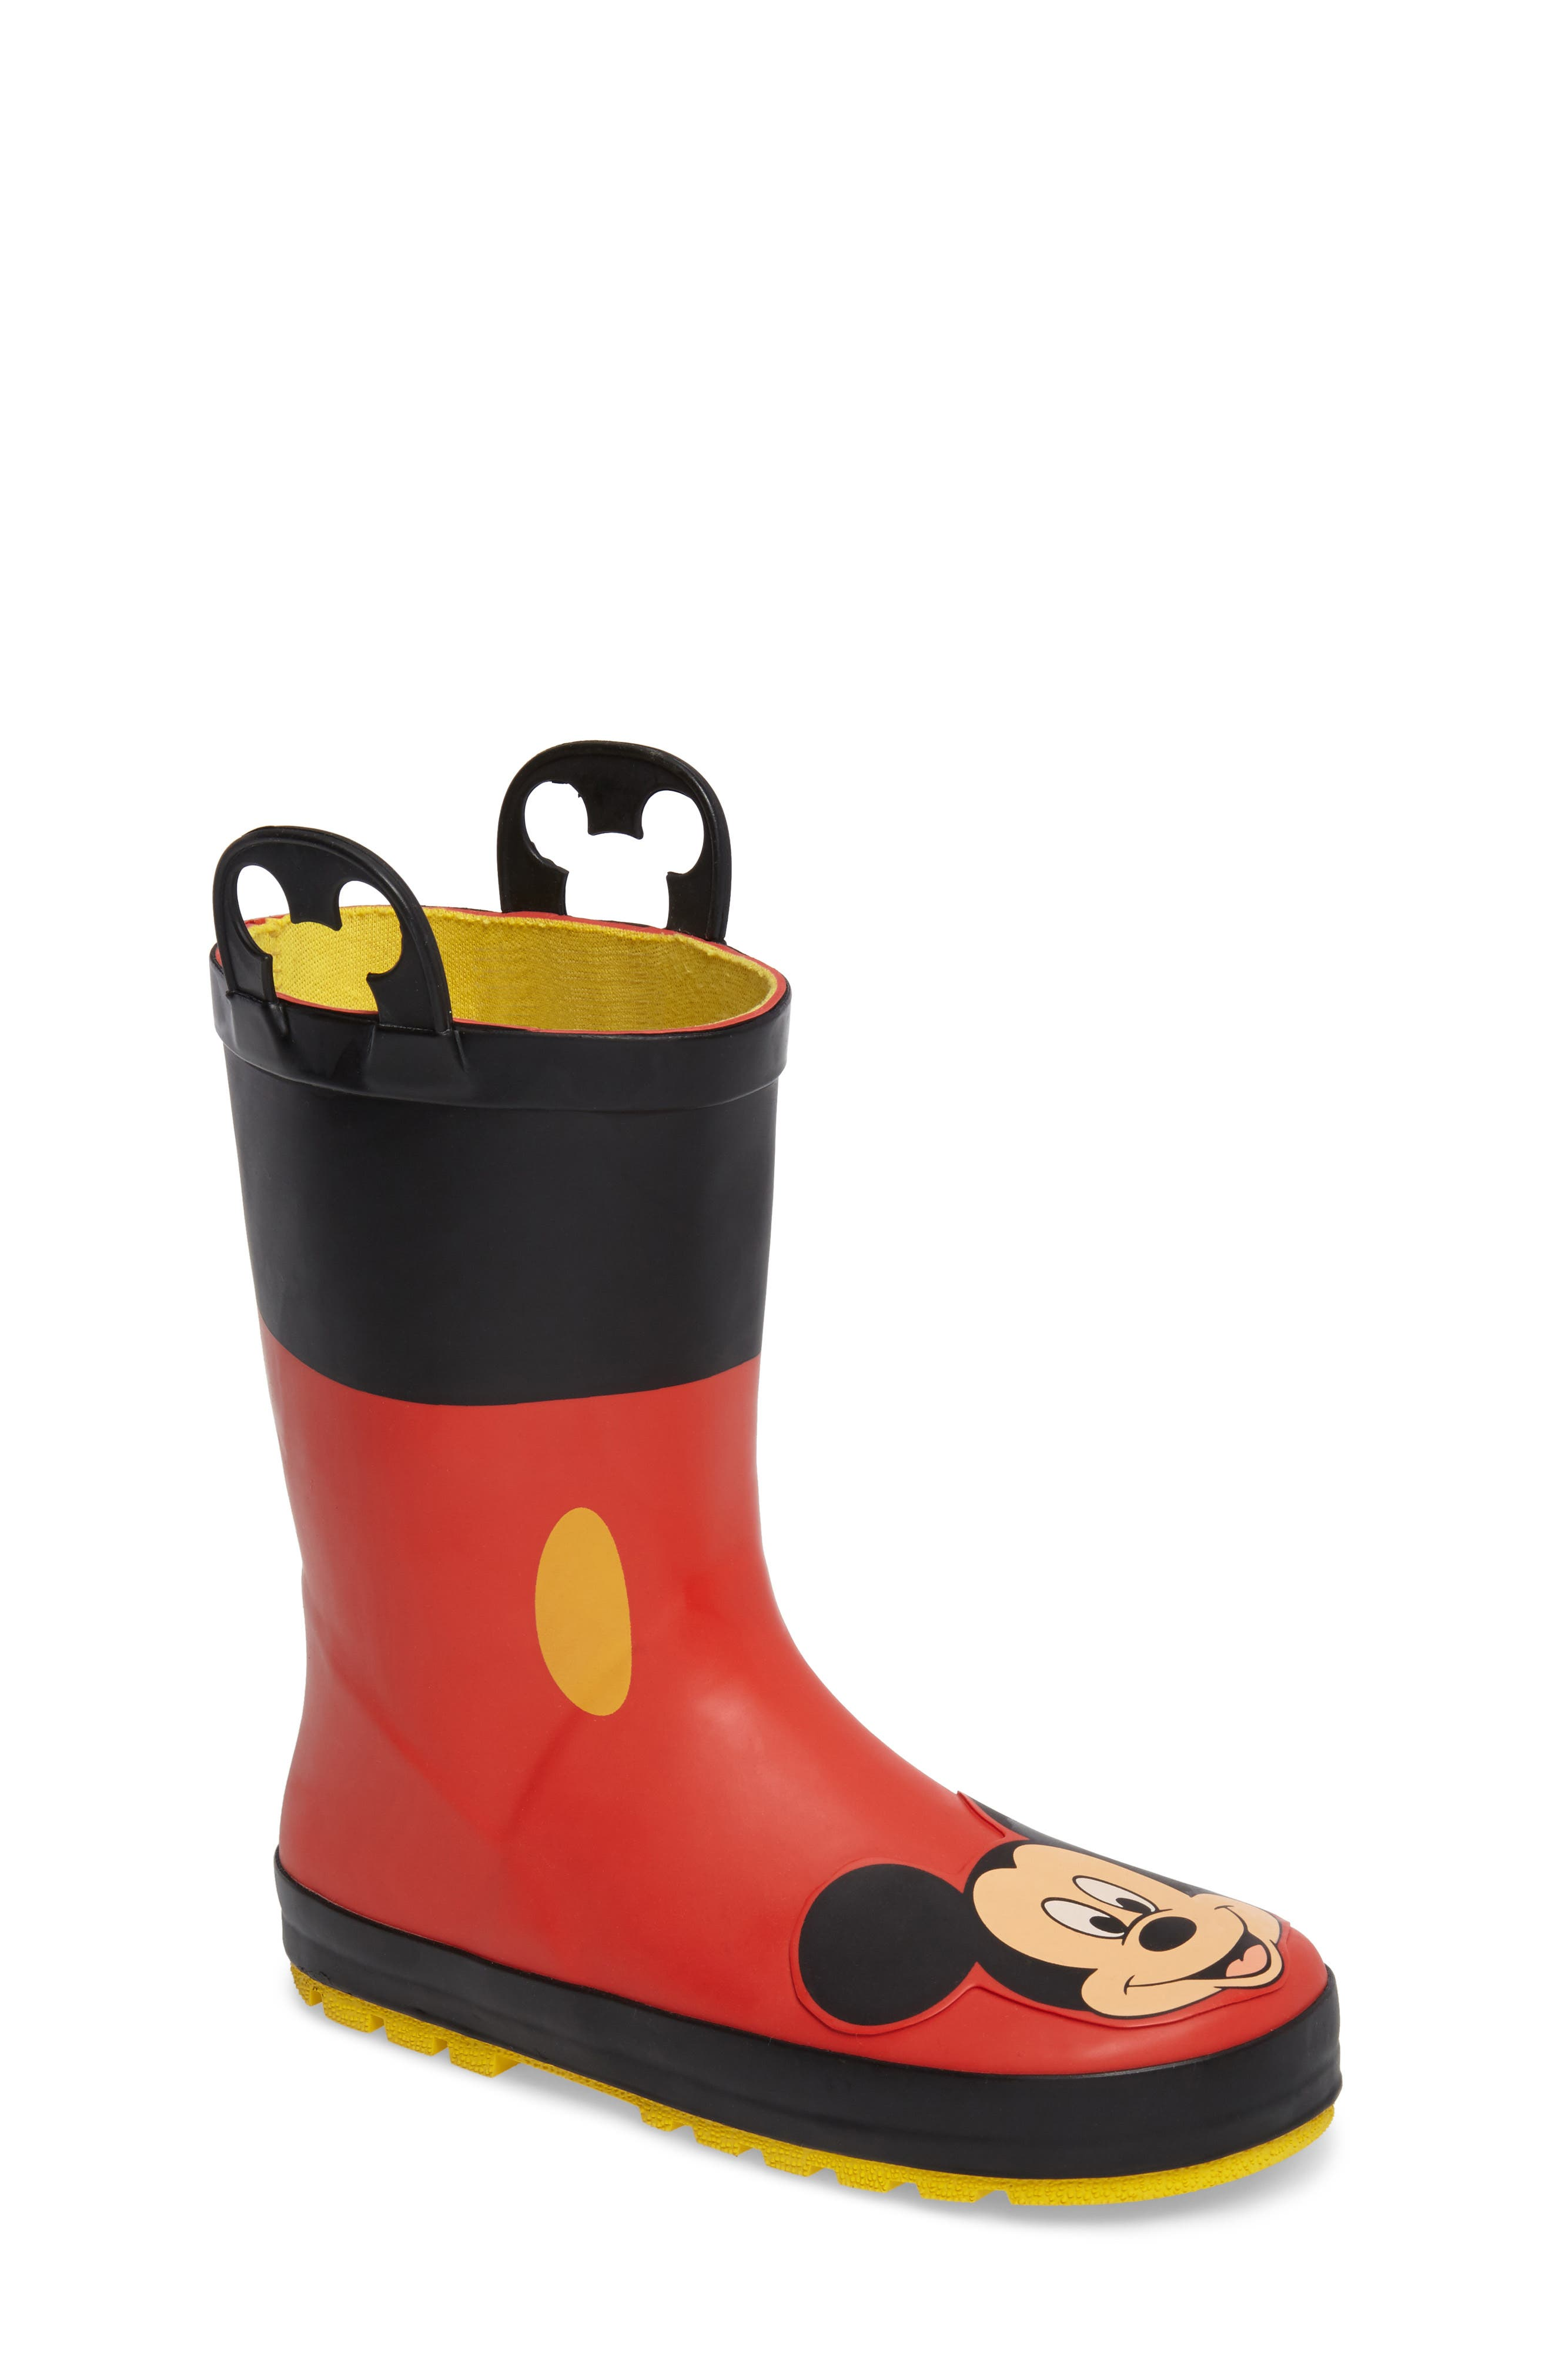 WESTERN CHIEF Mickey Mouse Rain Boot, Main, color, RED